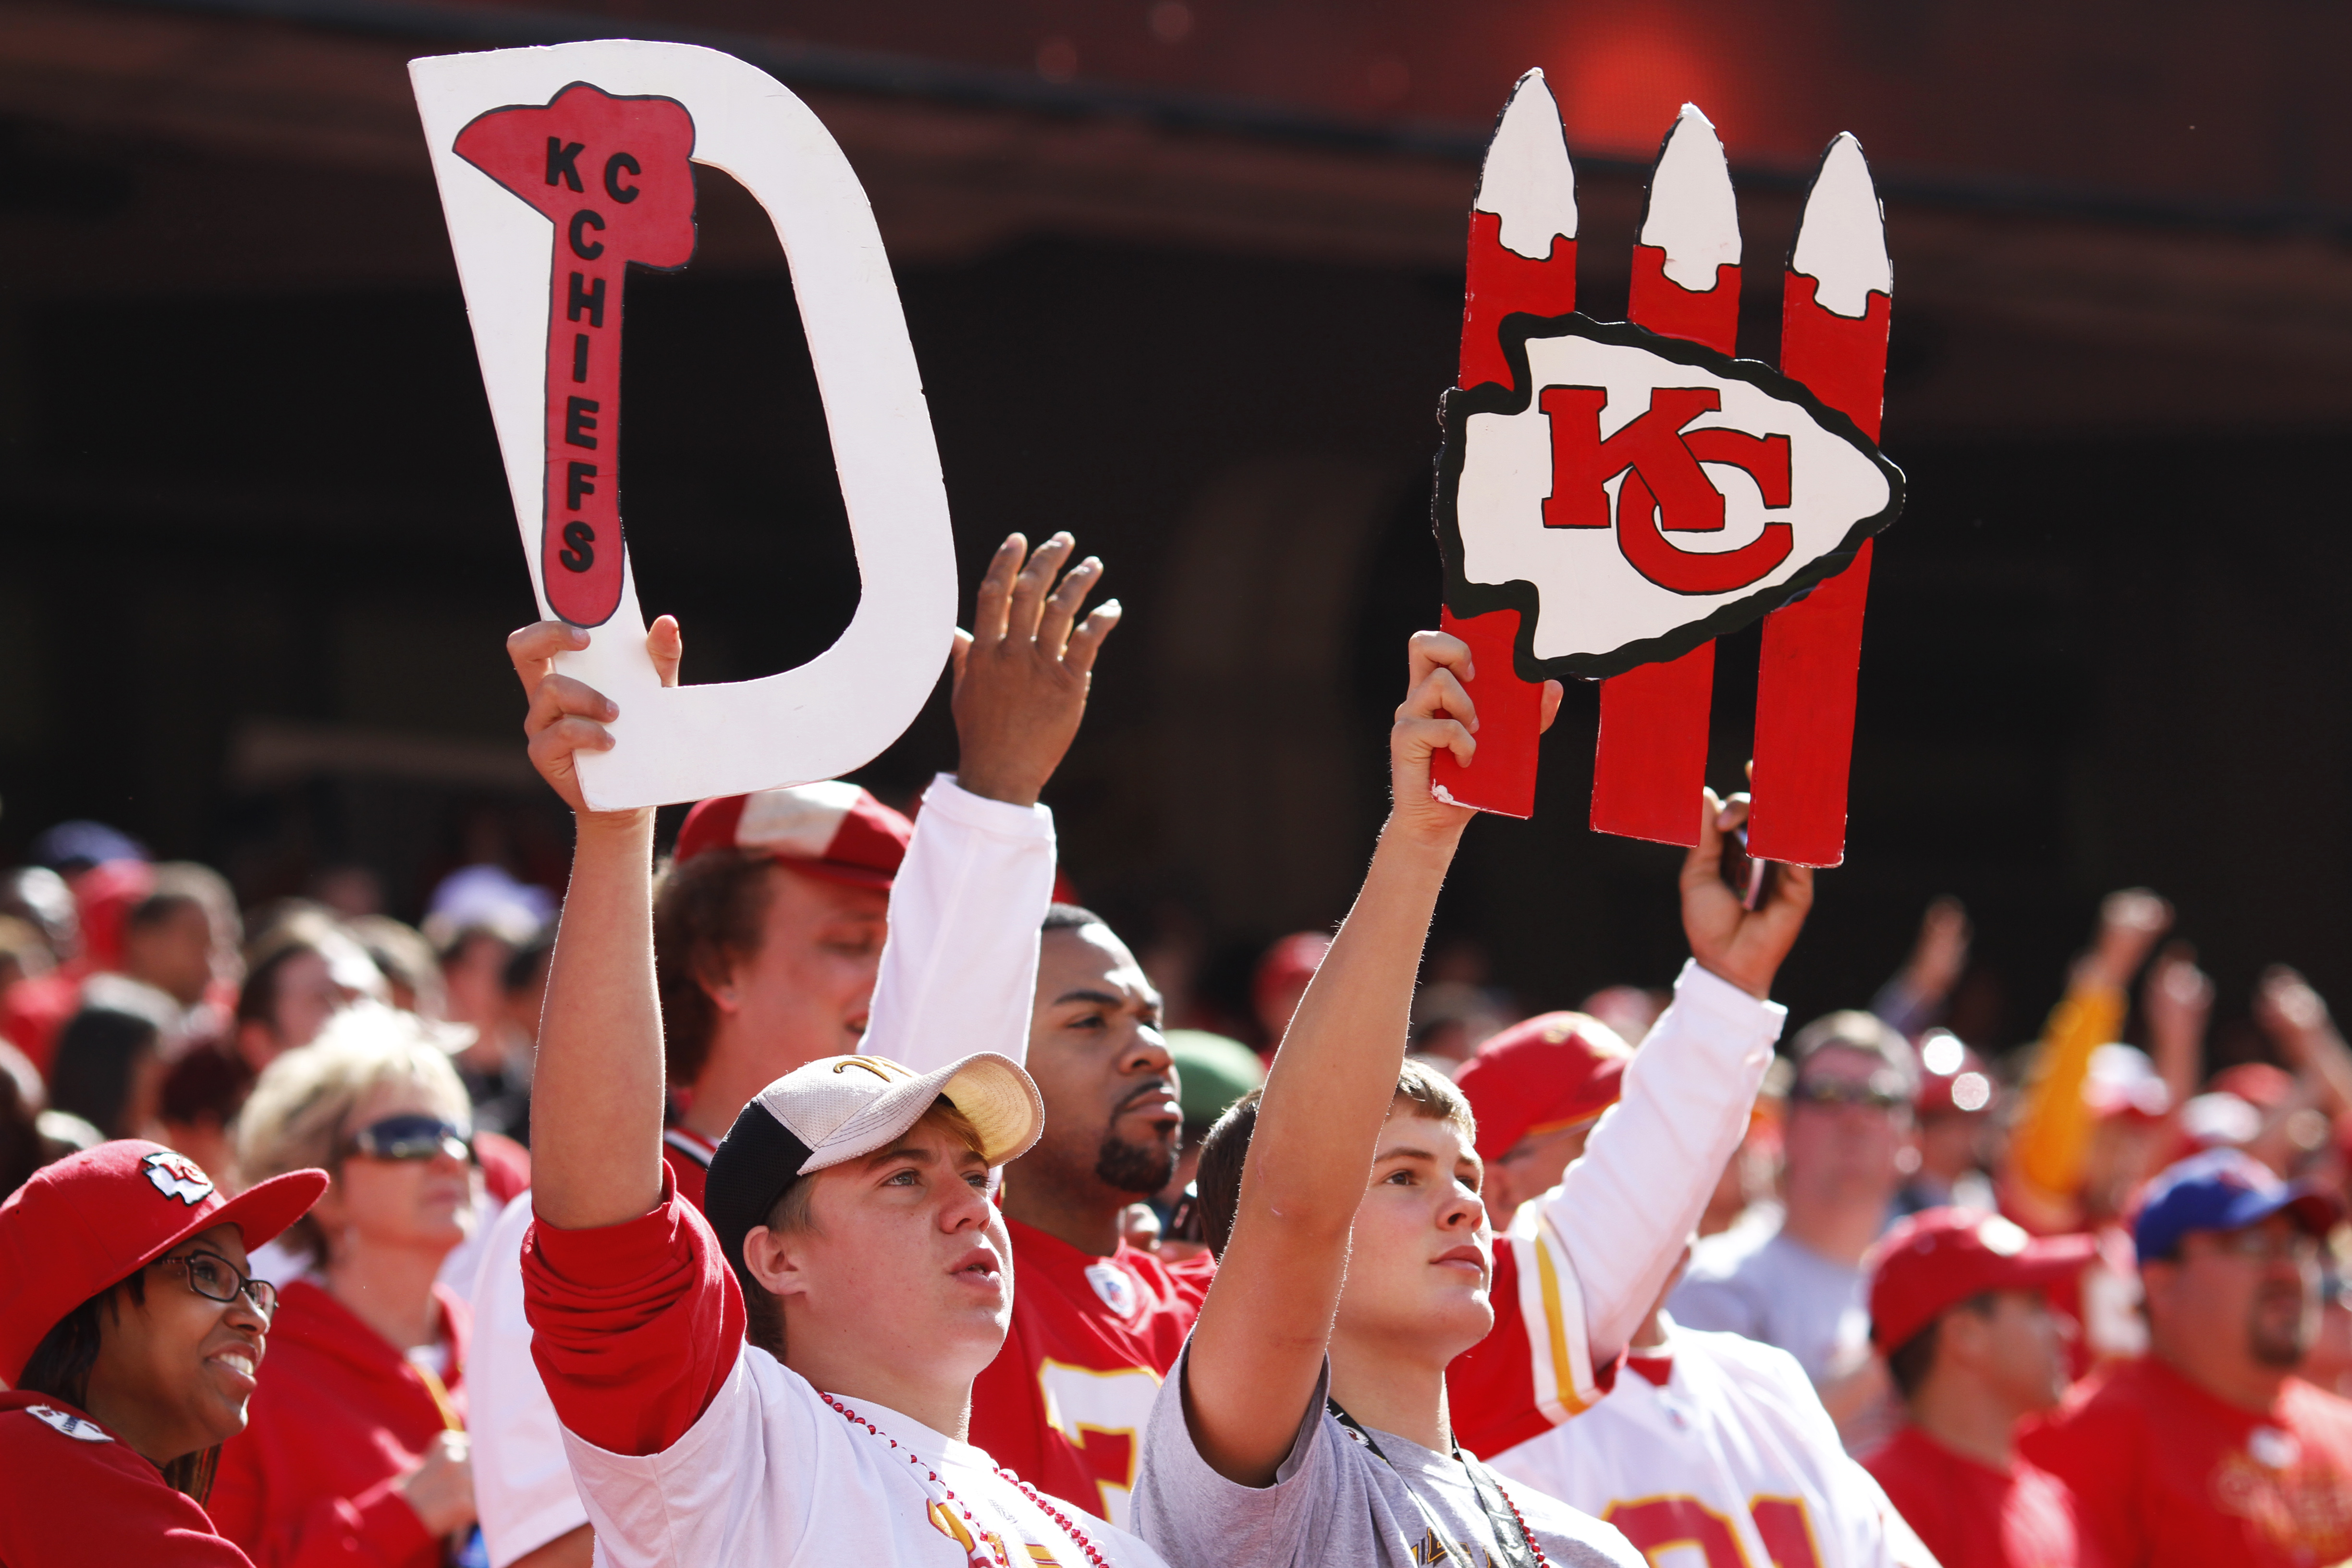 The fans in KC are loving their new, rejuvenated Chiefs.